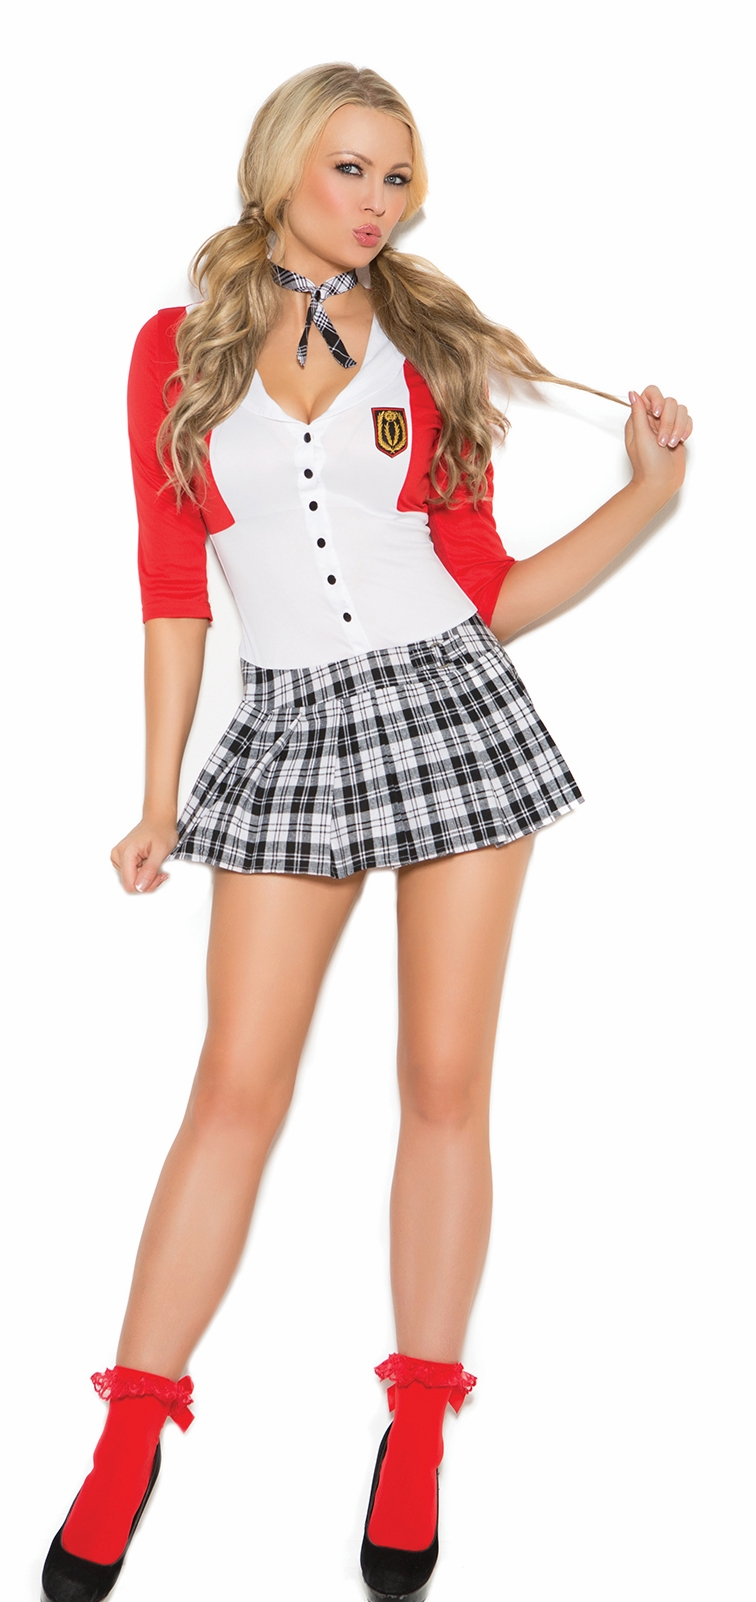 9113 Dean List Diva 2pc Adult Costume by Elegant Moments